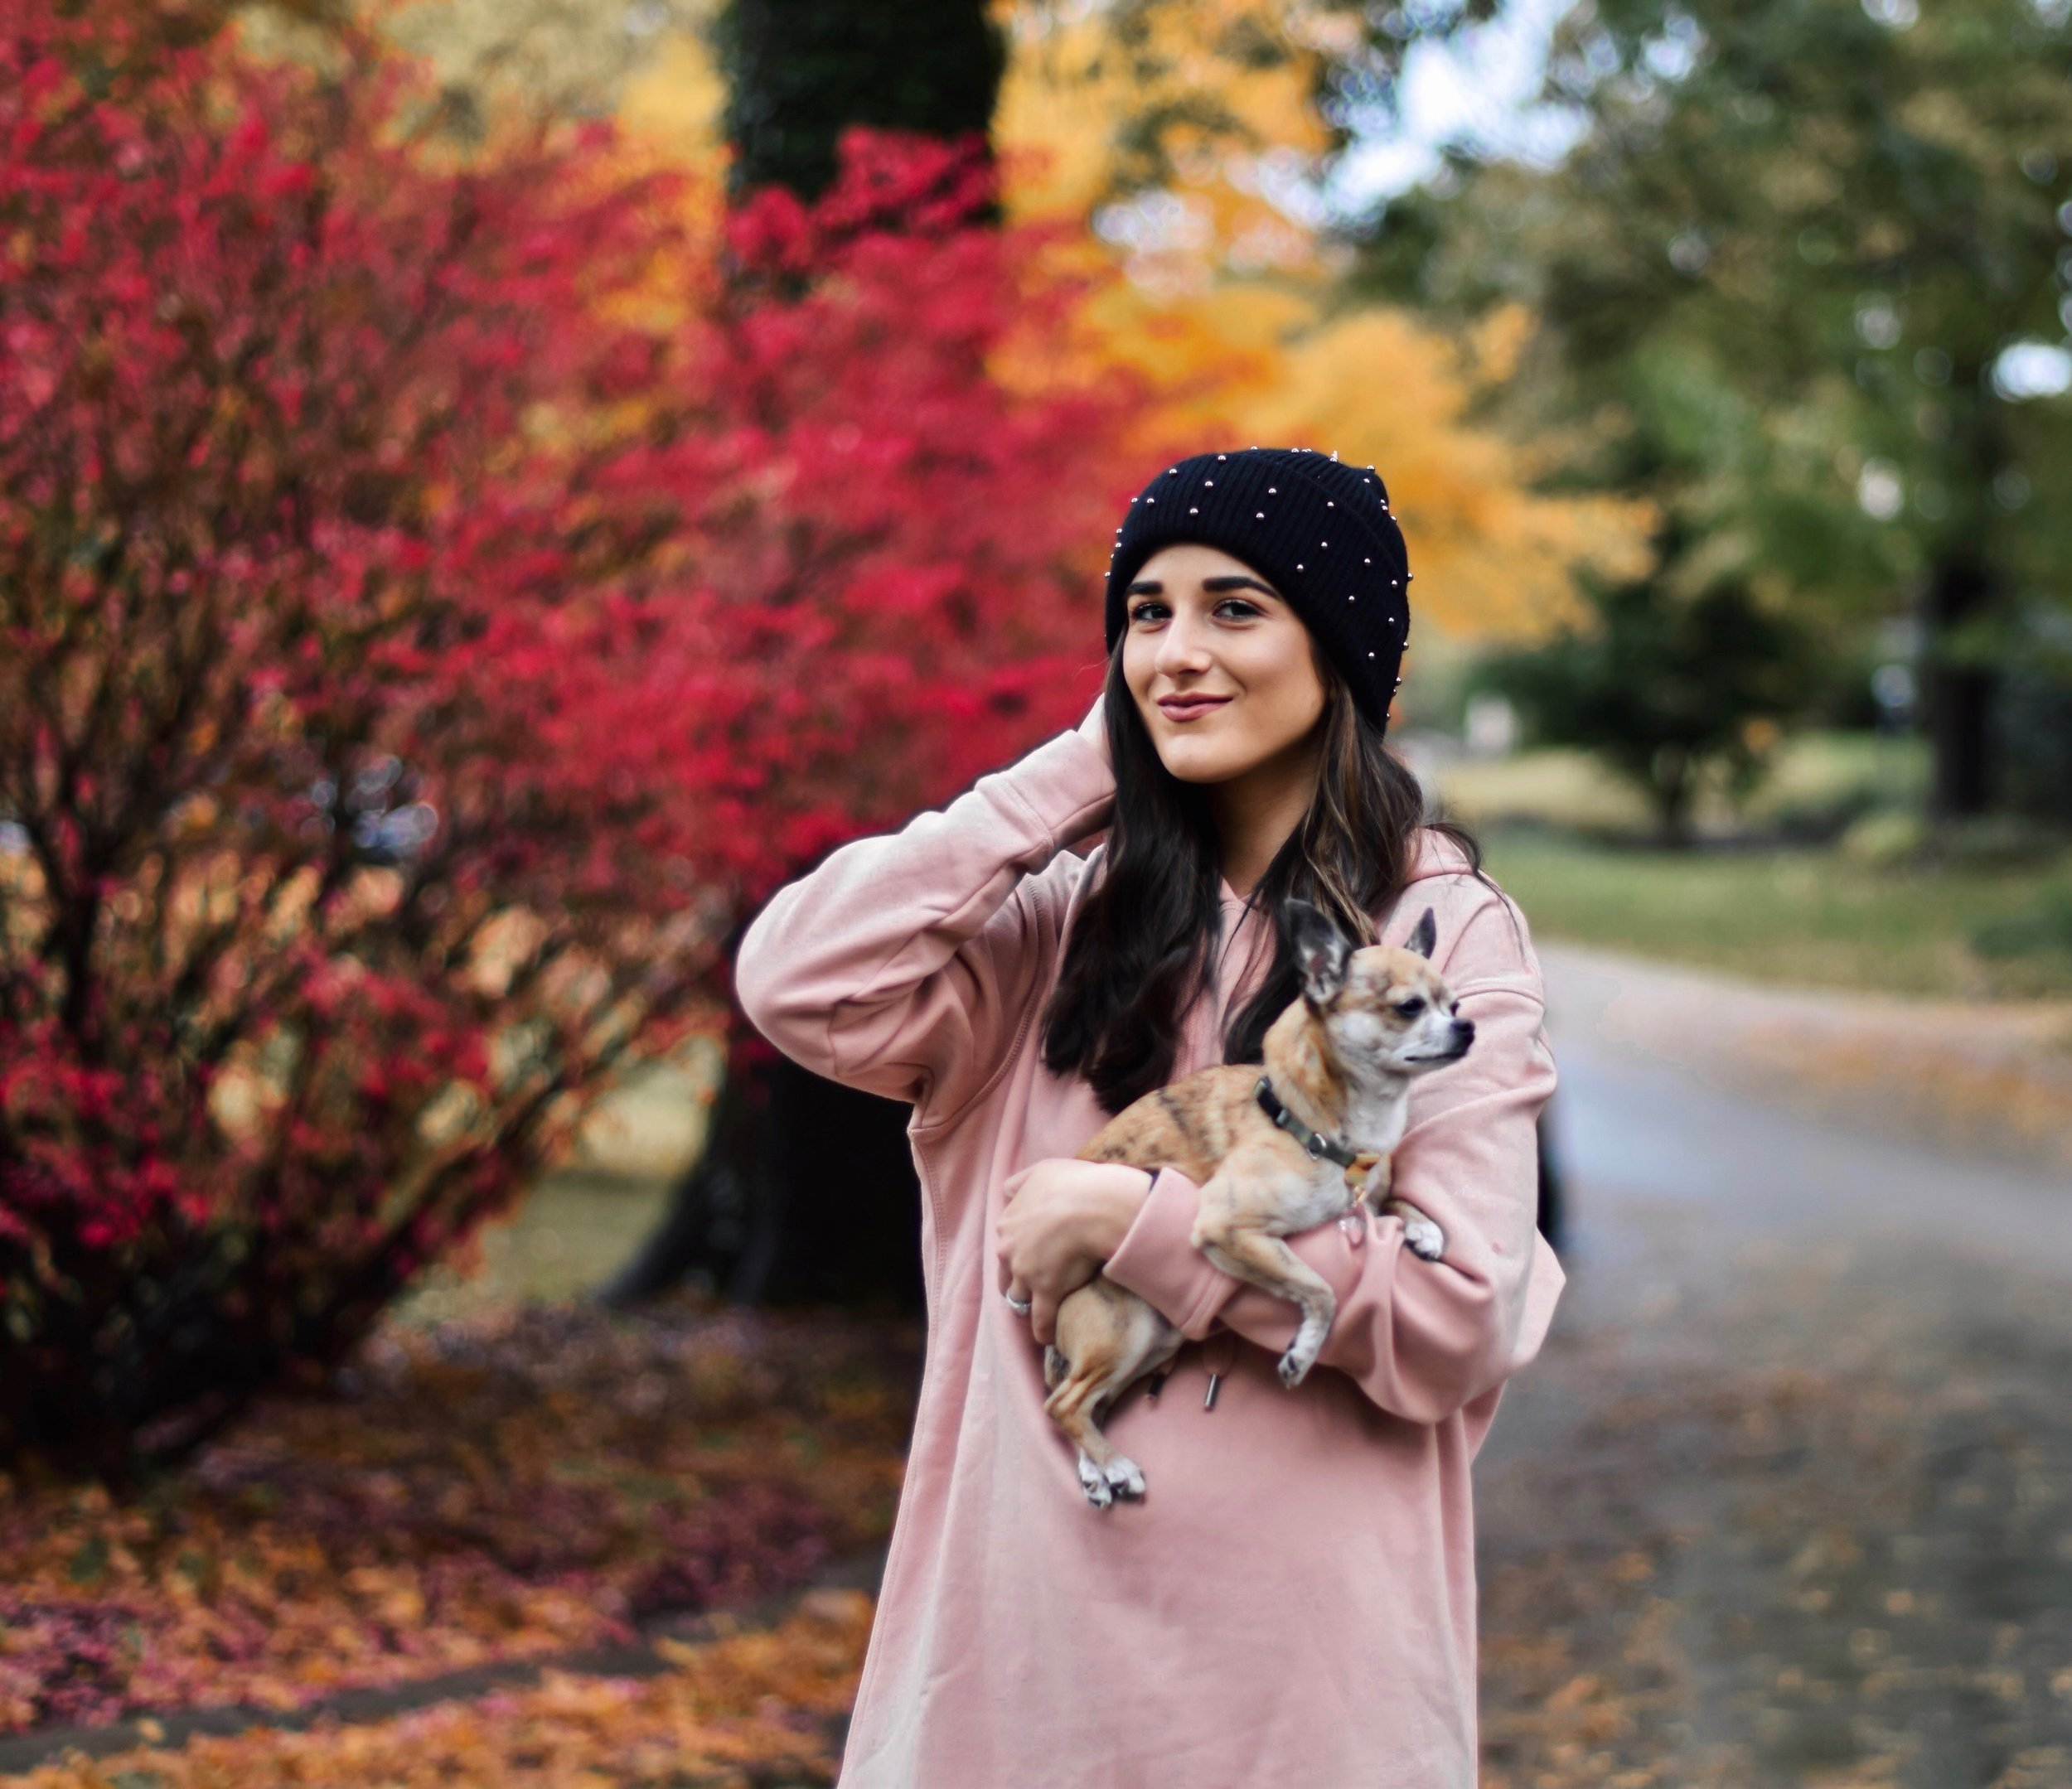 Getting Winter Ready With Macy's Esther Santer Fashion Blog NYC Street Style Blogger Outfit OOTD Trendy Chihuahua Pink Sweatshirt Dress Black Beanie Black Fur Booties Boots Shoes Fall Winter Outfit Tights Beautiful  H&M Shop Cute Puppy Dog Inspiration.jpg